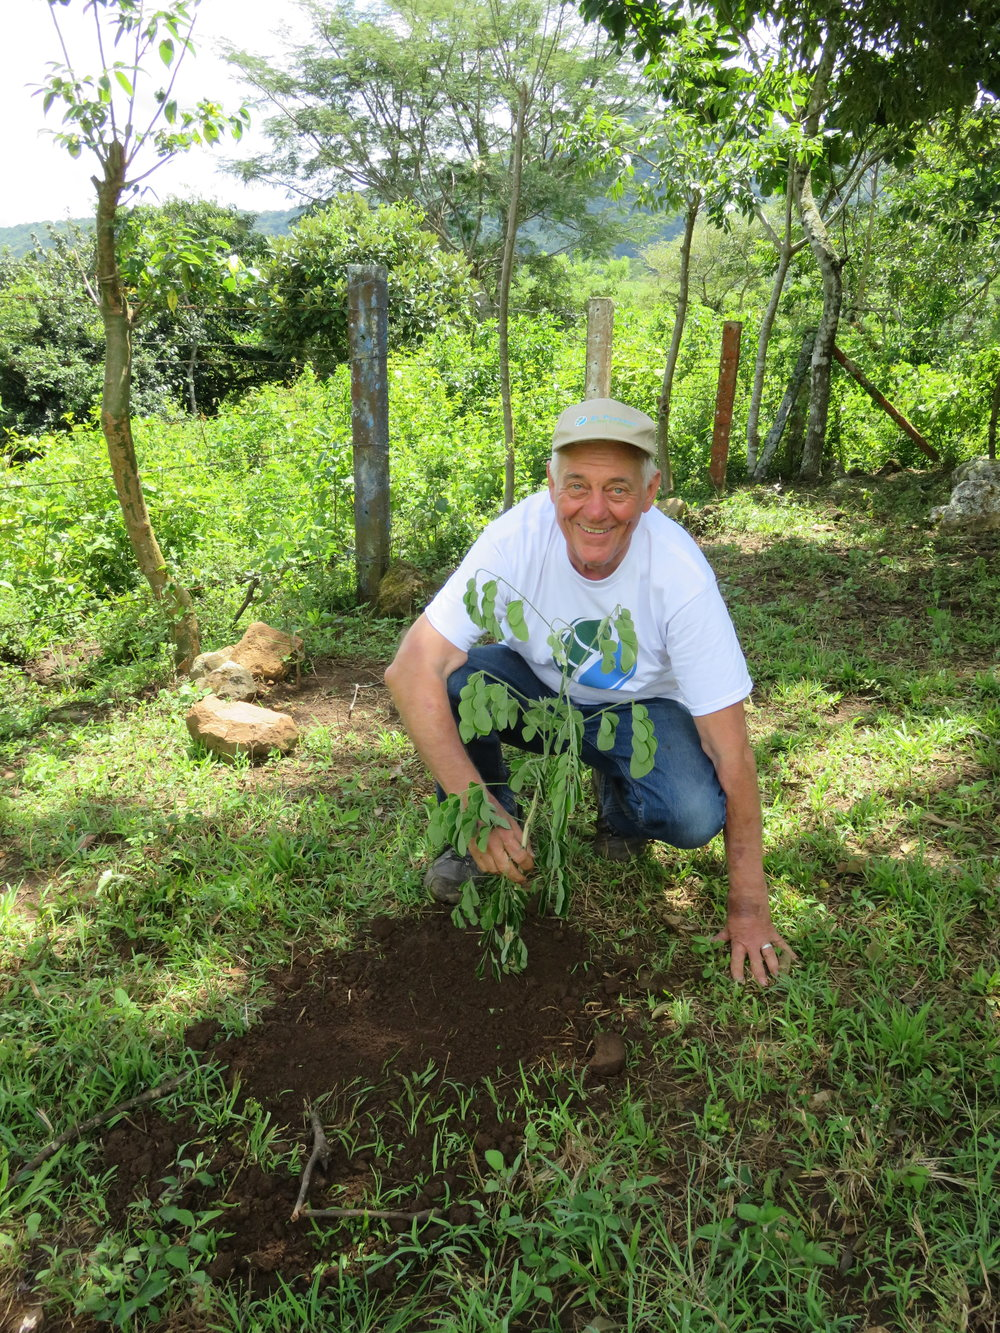 Board Member and Rotarian Ray Finney planting a tree in rural Nicaragua.